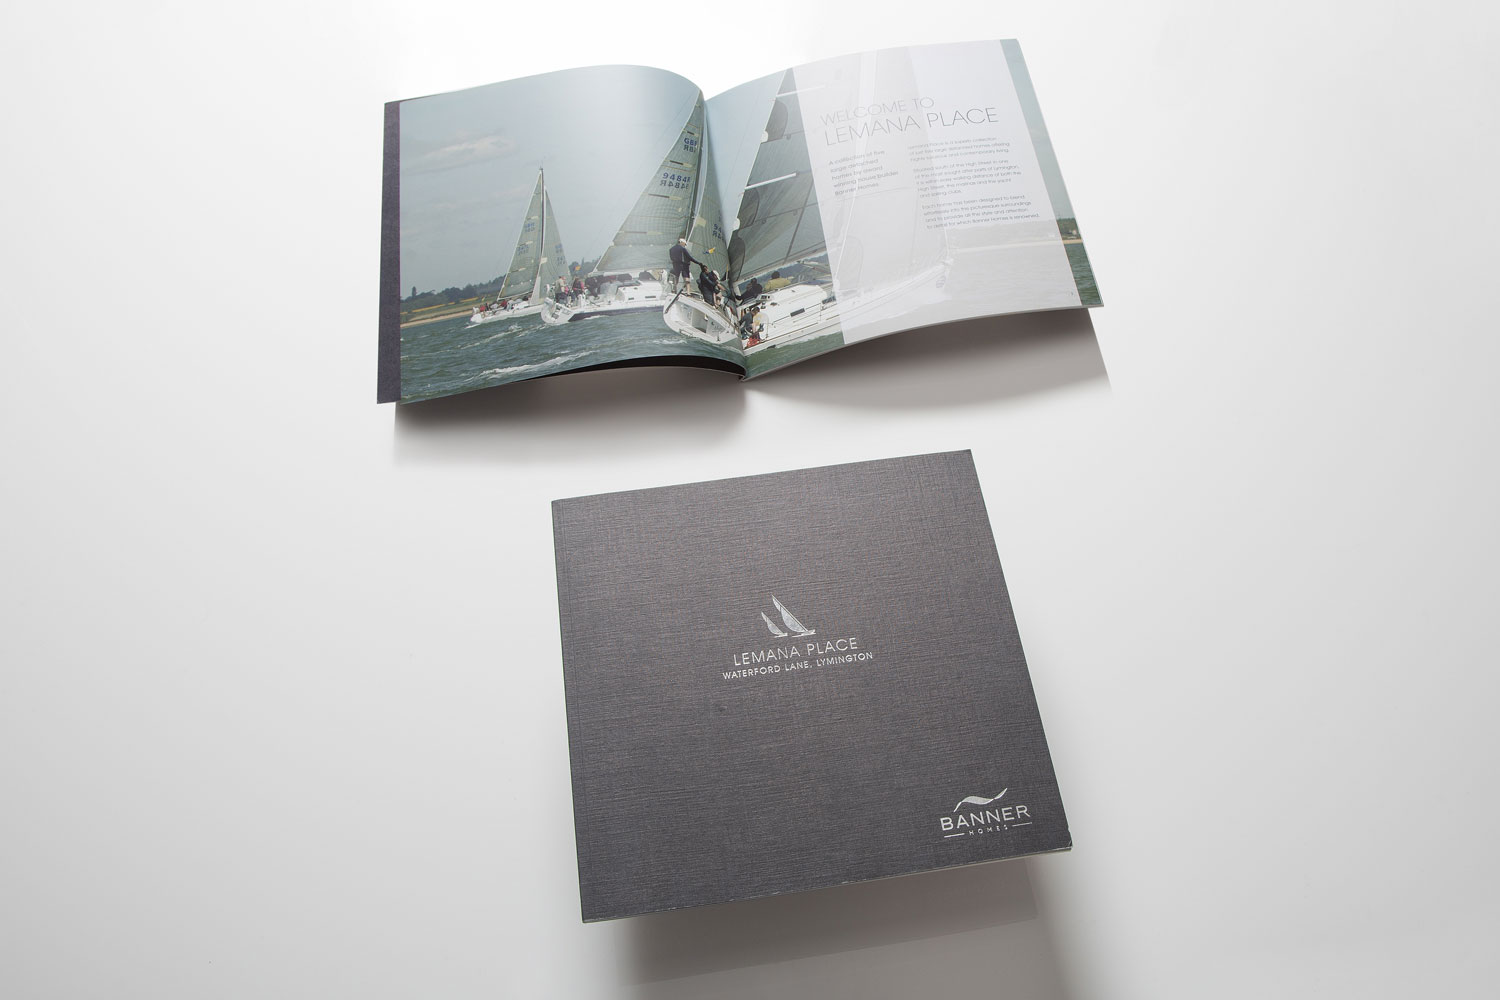 Property-marketing-brochure-for-development-in-Lymington.jpg